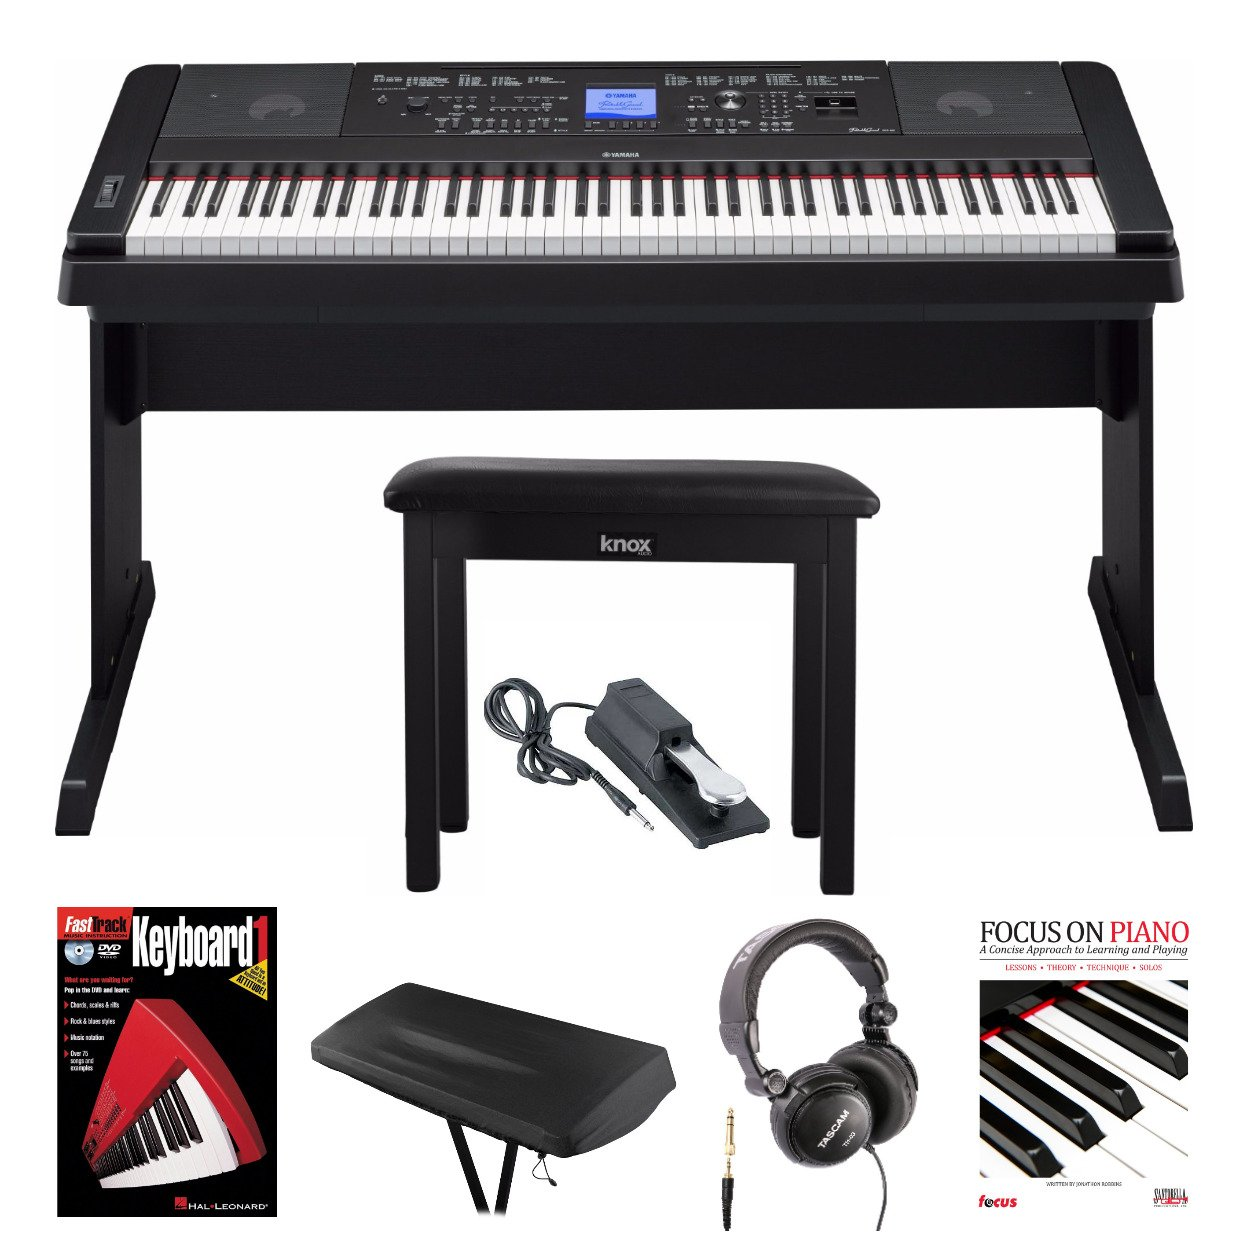 Weighted Keys Piano with Knox Piano Bench, Headphones, Sustain Pedal Dust Cover, Book & DVD